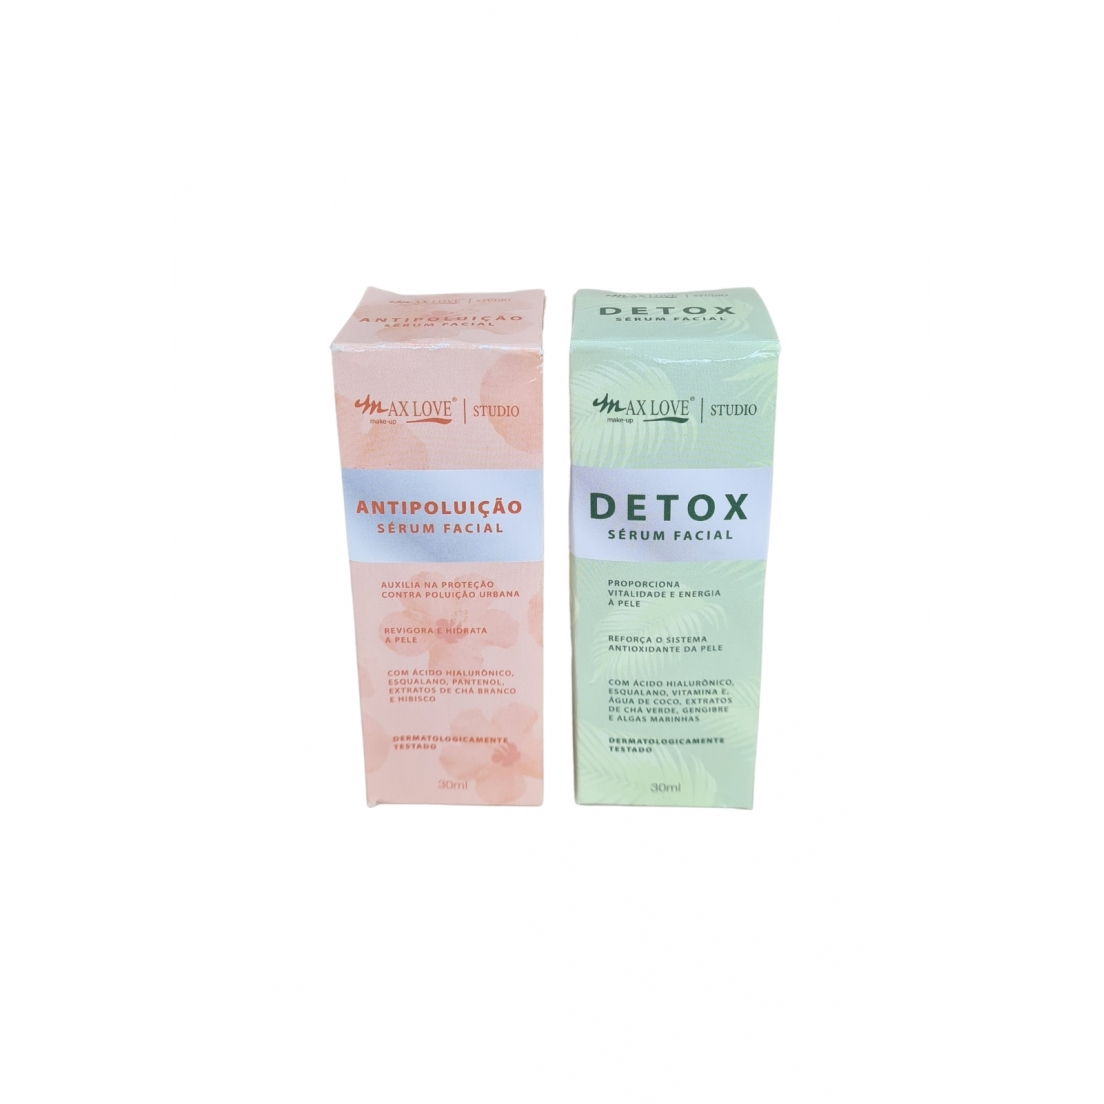 Kit sérum facial antipoluição e detox Max Love